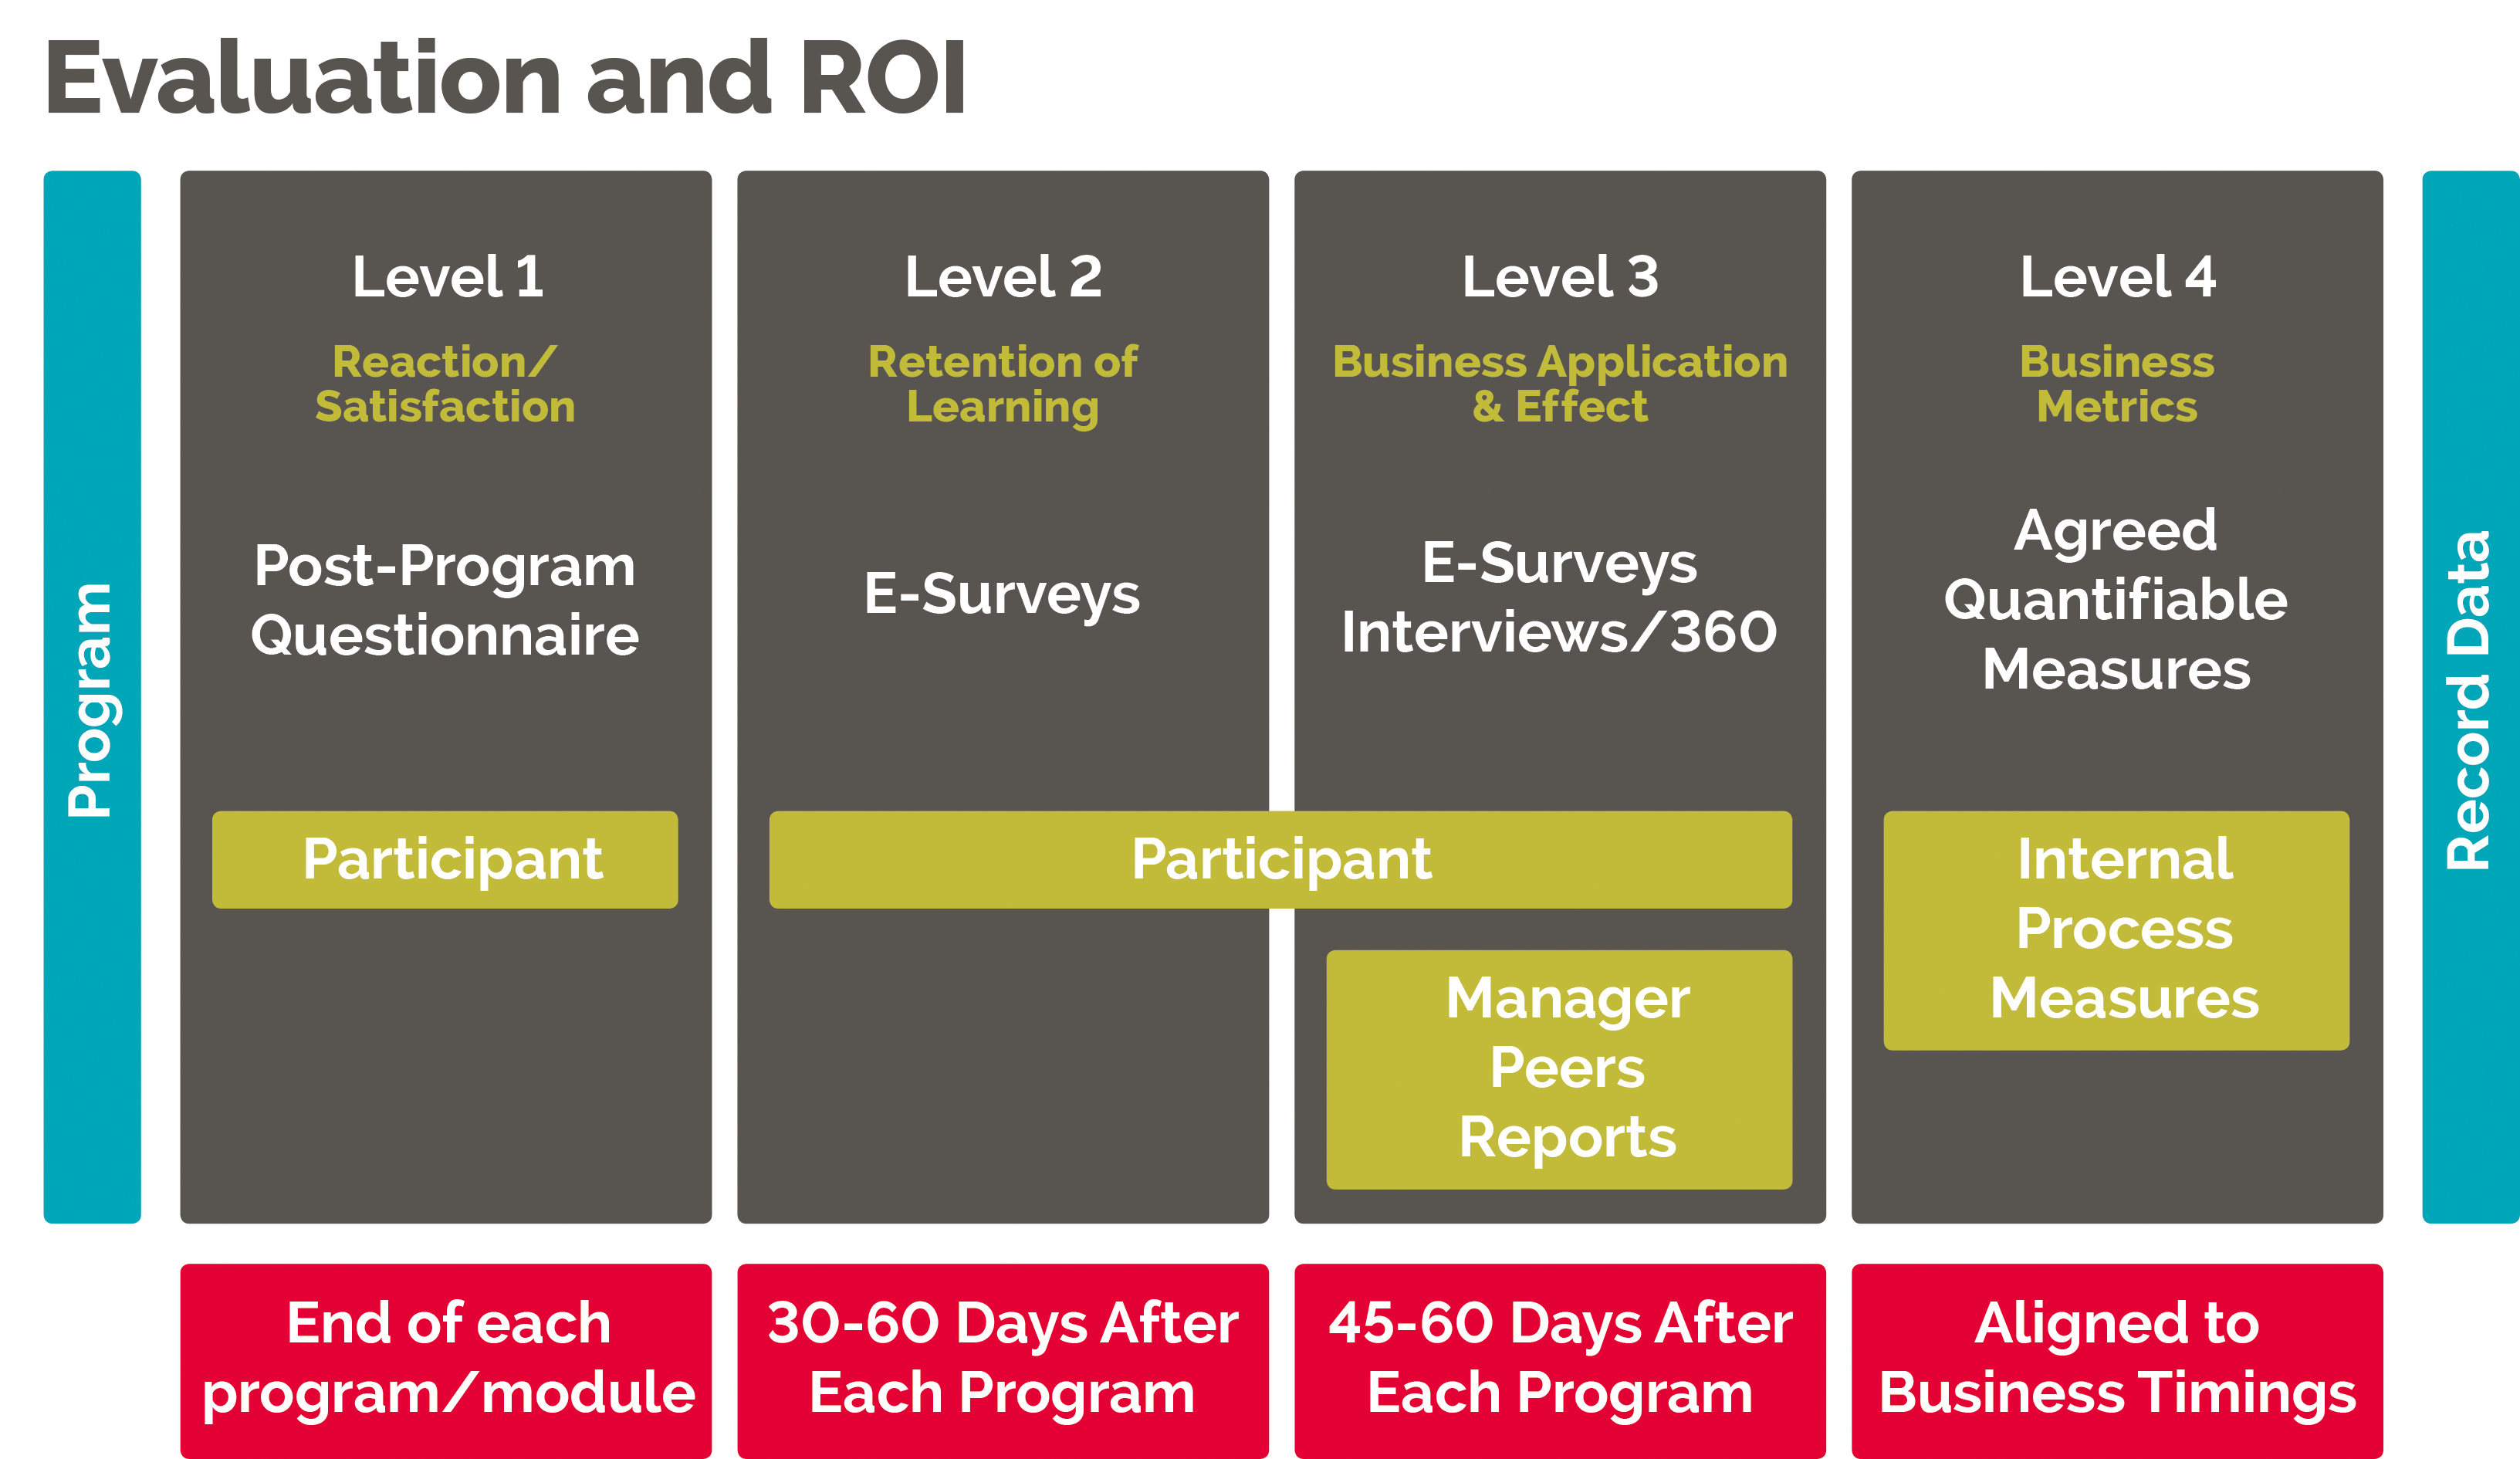 evaluation and ROI model